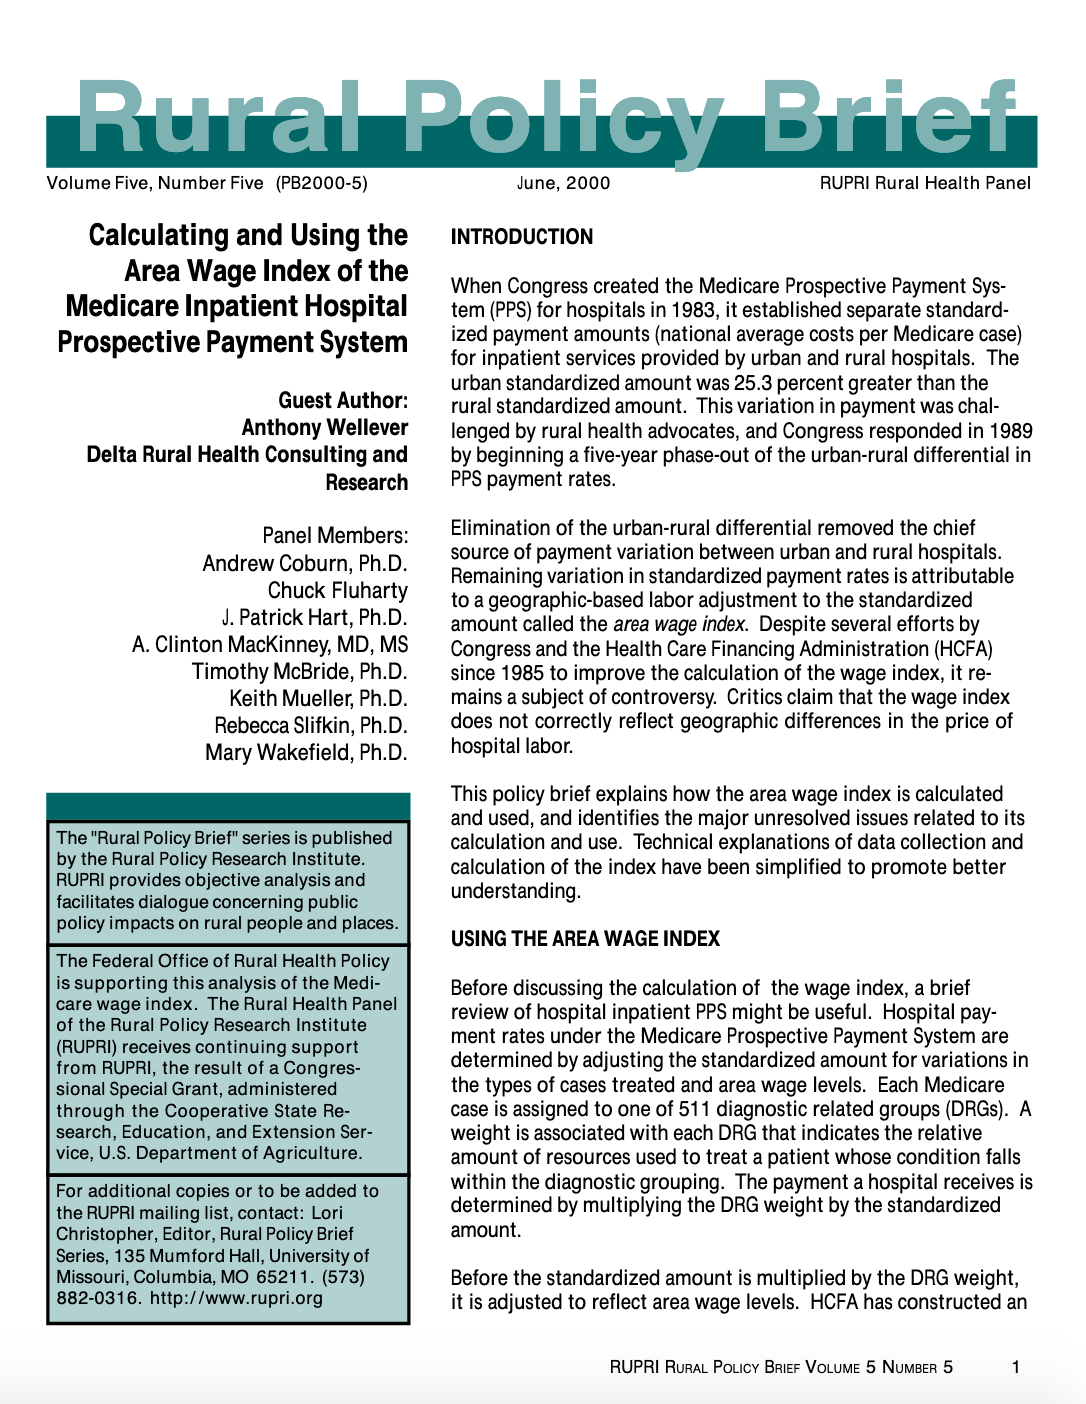 Calculating and Using the Area Wage Index of the Medicare Inpatient Hospital Prospective Payment System (Cover Image)